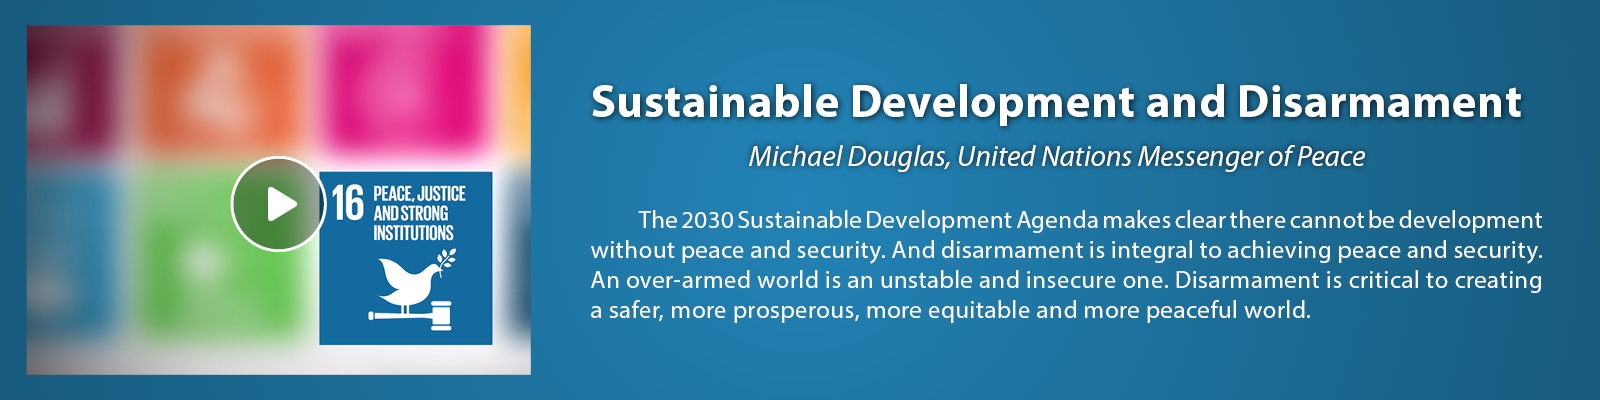 The 2030 Sustainable Development Agenda makes clear there cannot be development without peace and security. And disarmament is integral to achieving peace and security. An over-armed world is an unstable and insecure one. Disarmament is critical to creating a safer, more prosperous, more equitable and more peaceful world.